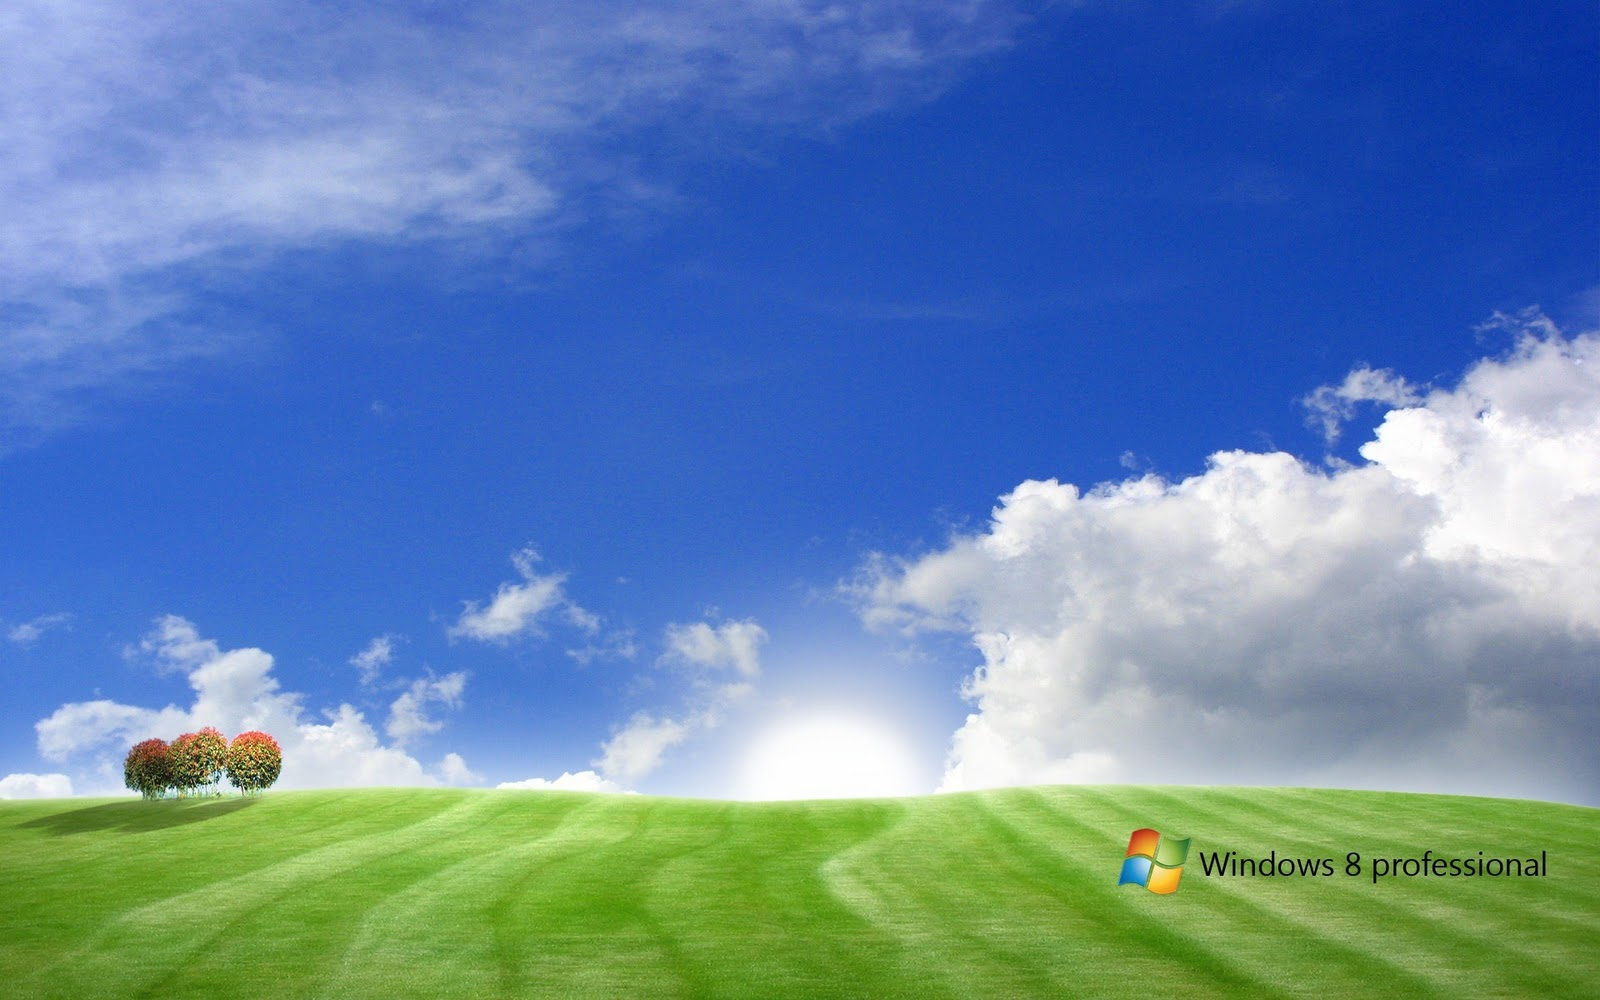 http://1.bp.blogspot.com/-Ypg7jYDrBlY/T2lS5F-j7_I/AAAAAAAACME/fuoQWyNIVhA/s1600/Tutorialsall-HD-windows-8-wallpaper-7.jpg